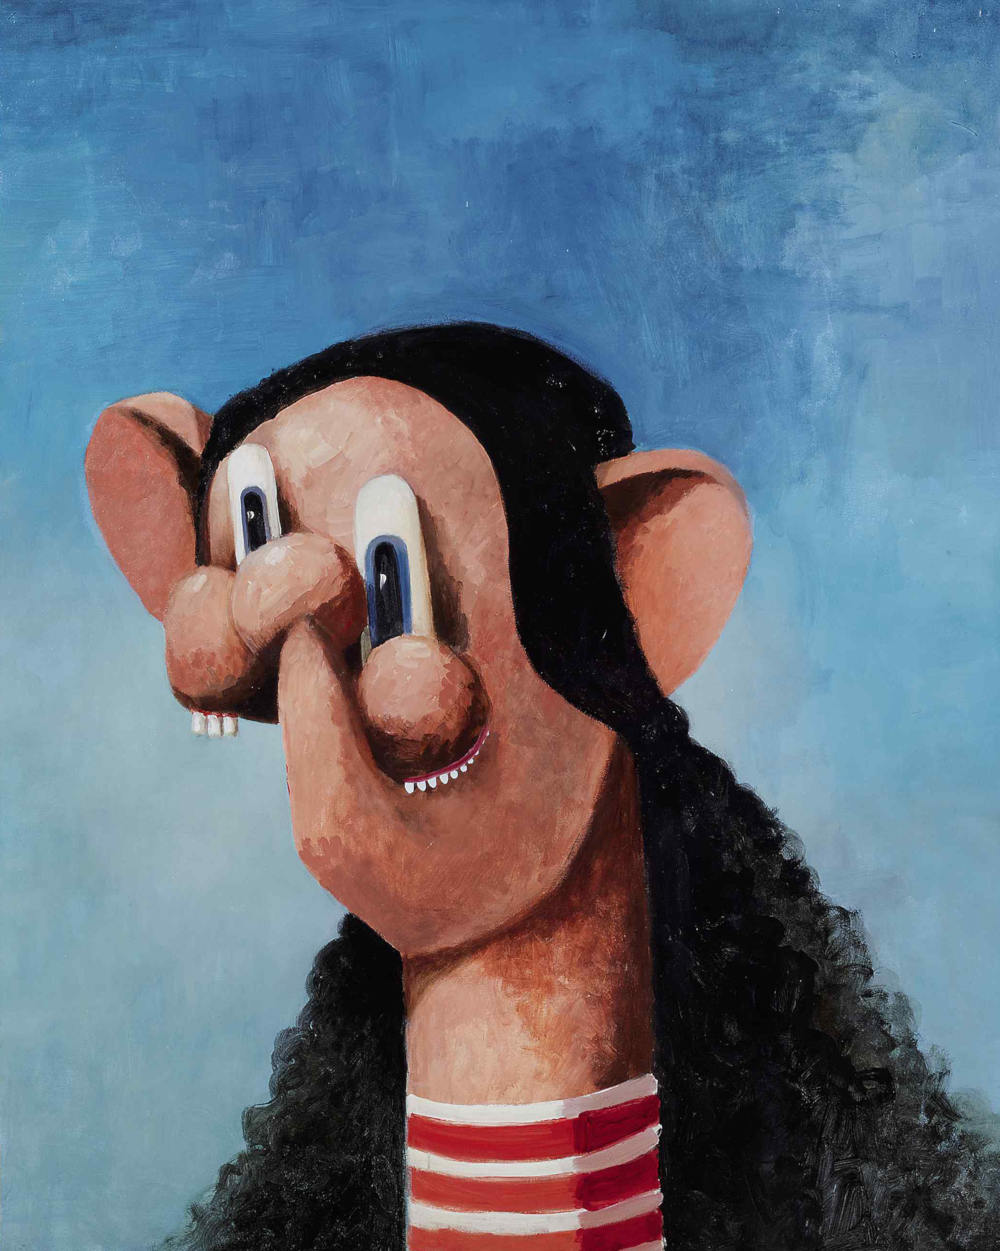 George Condo, The K-Mart Girl, 2001. Oil on canvas 73 3/8 x 61 3/4 inches 186.4 x 156.8 cm